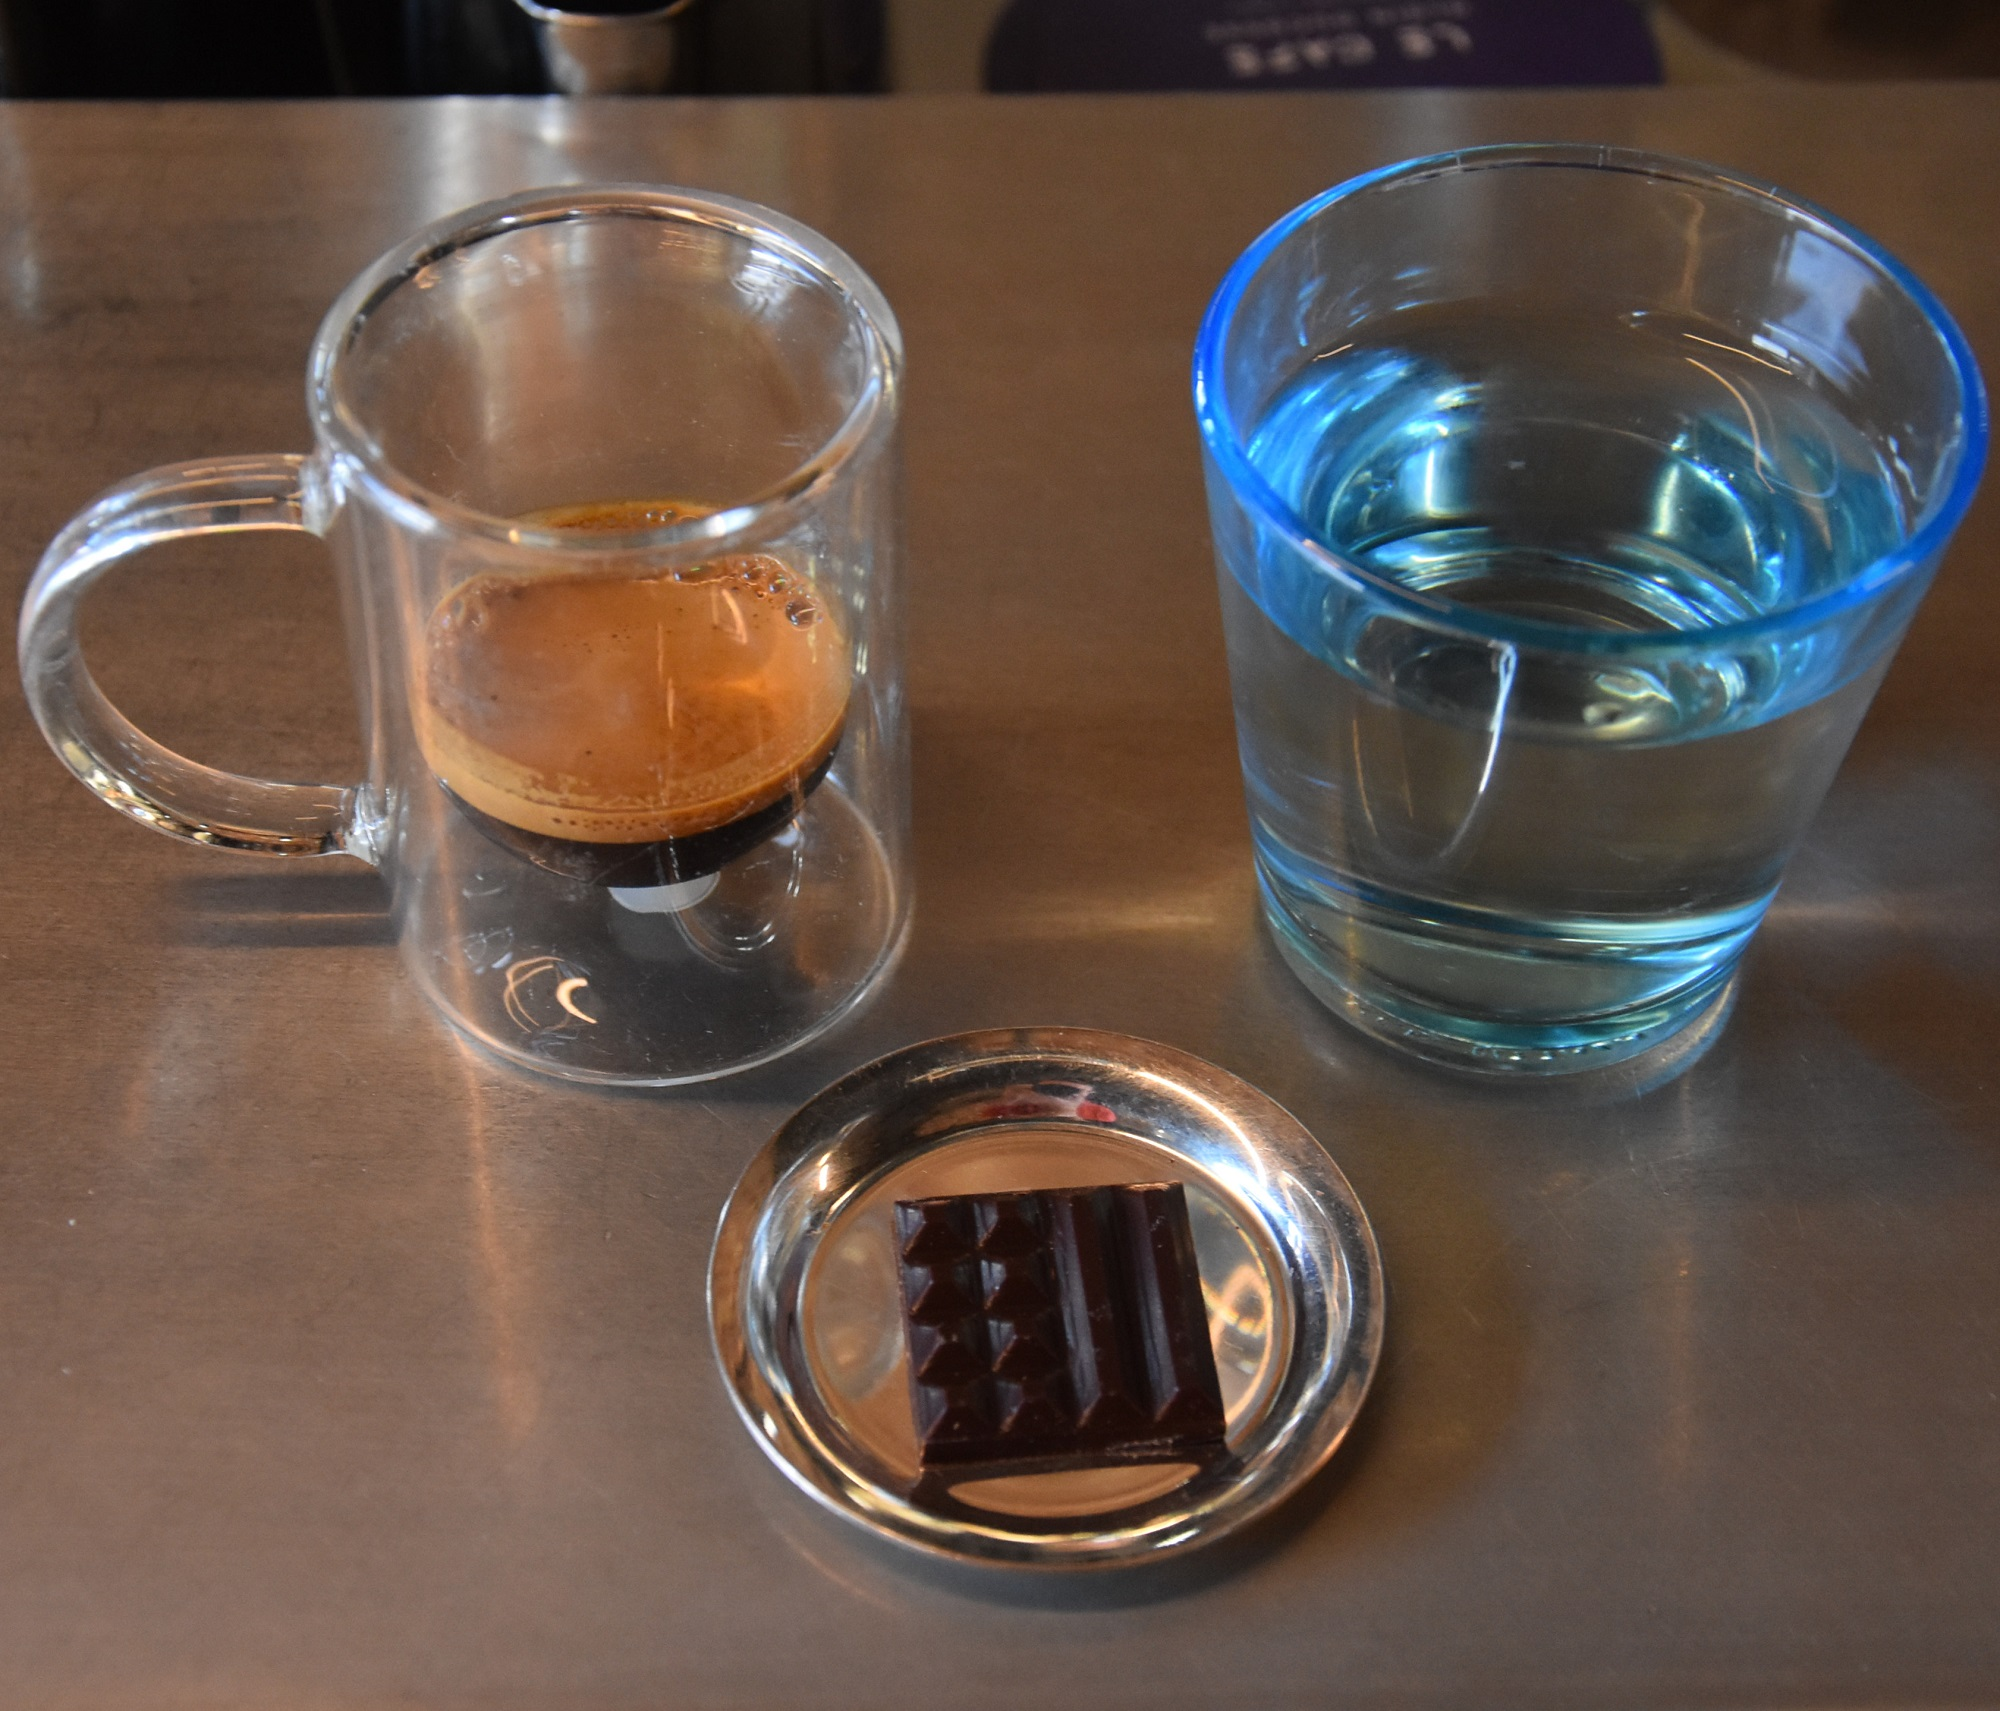 The signature espresso at Le Cafe Alain Ducasse in Coal Drops Yard, Kings Cross, served in a double-walled glass cup and a small square of chocolate.